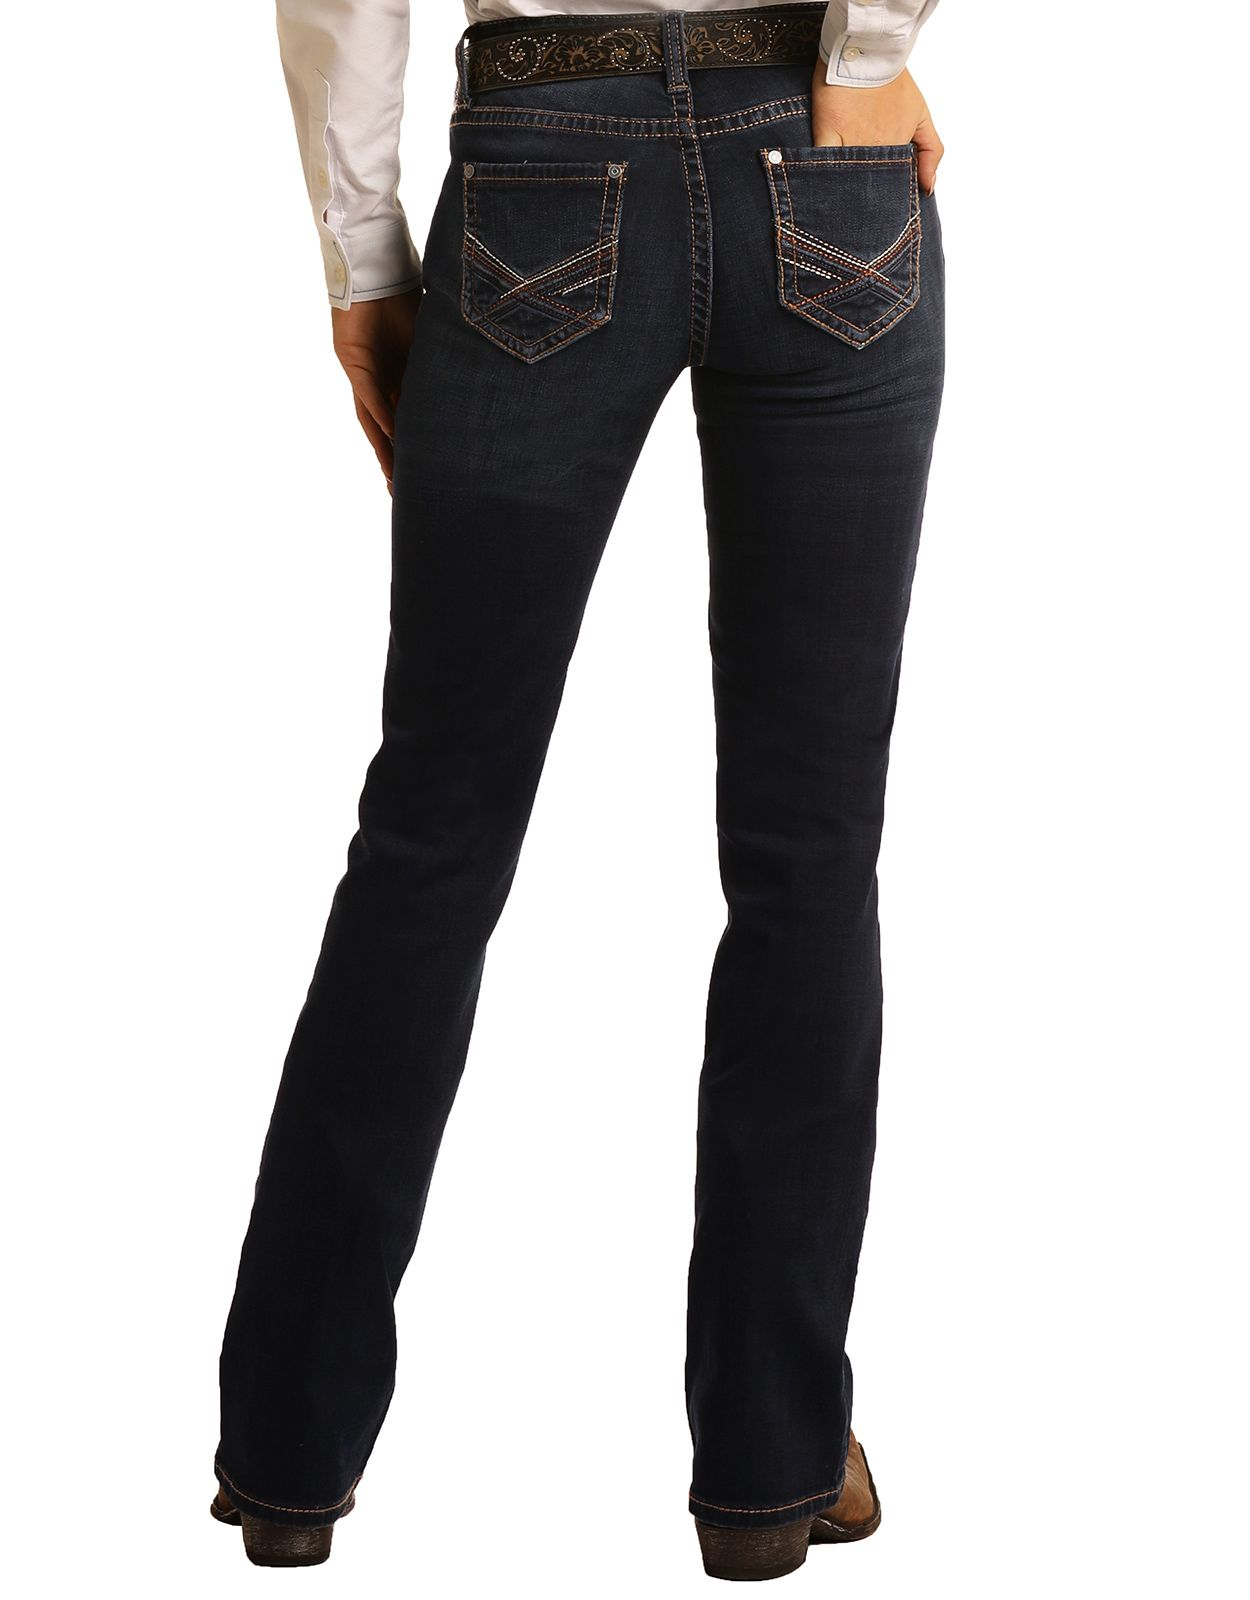 Rock & Roll Cowgirl Women's Stretch Riding Mid Rise Regular Fit Boot Cut Jeans- Dark Wash